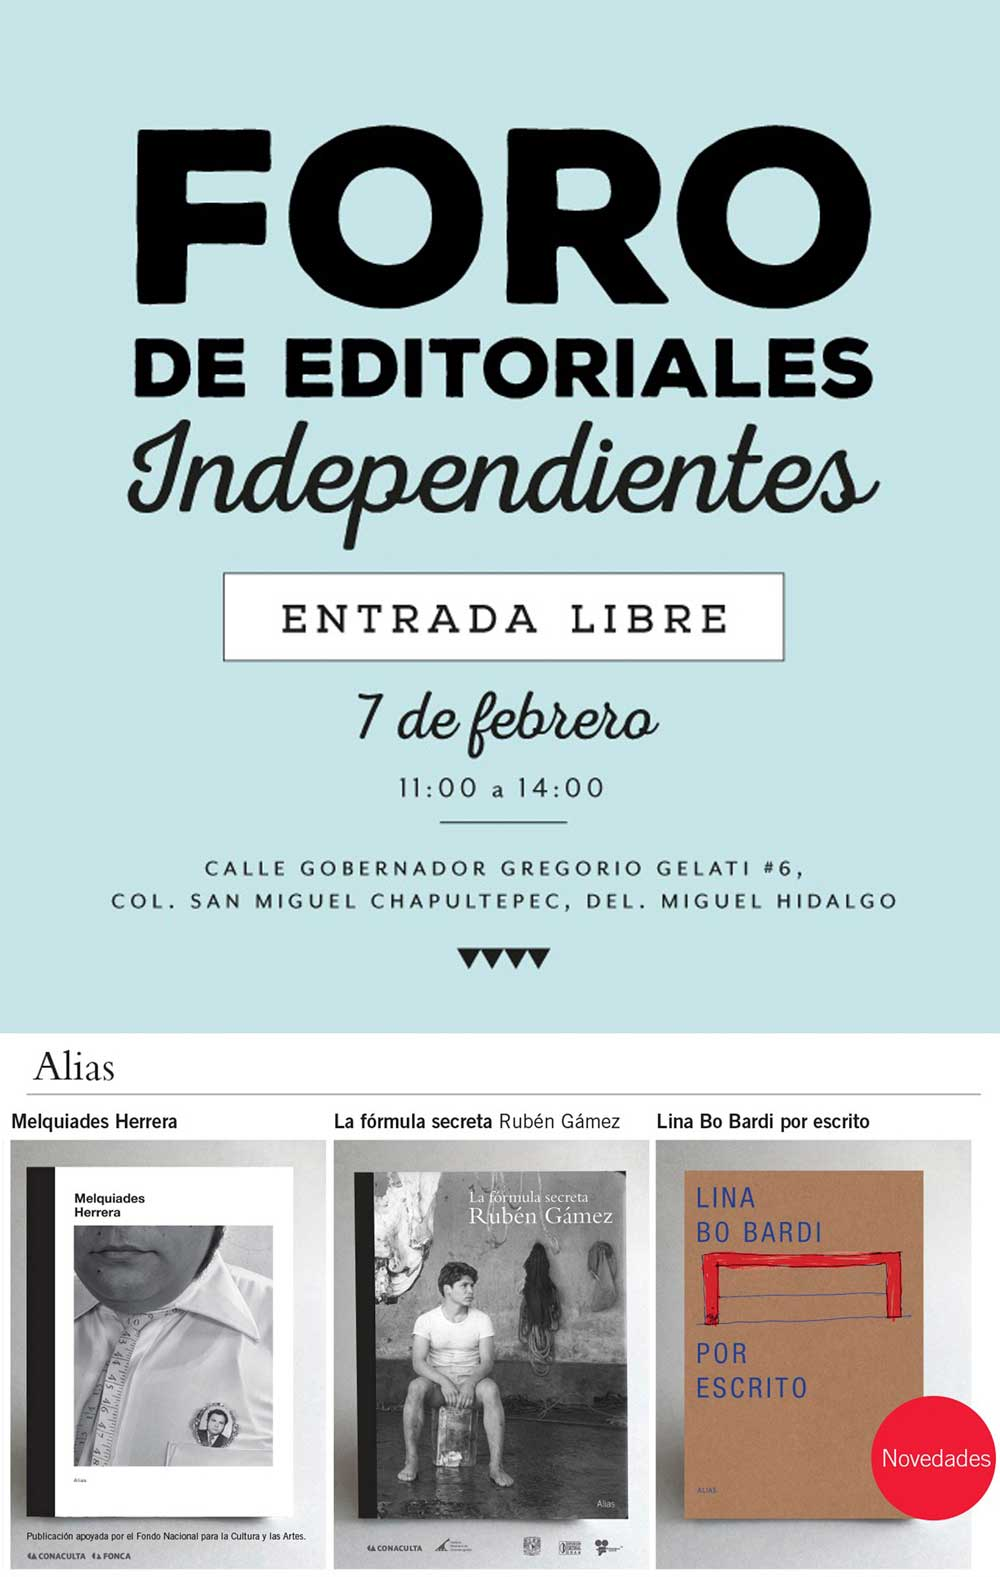 Alias en el Foro de Editoriales Independientes